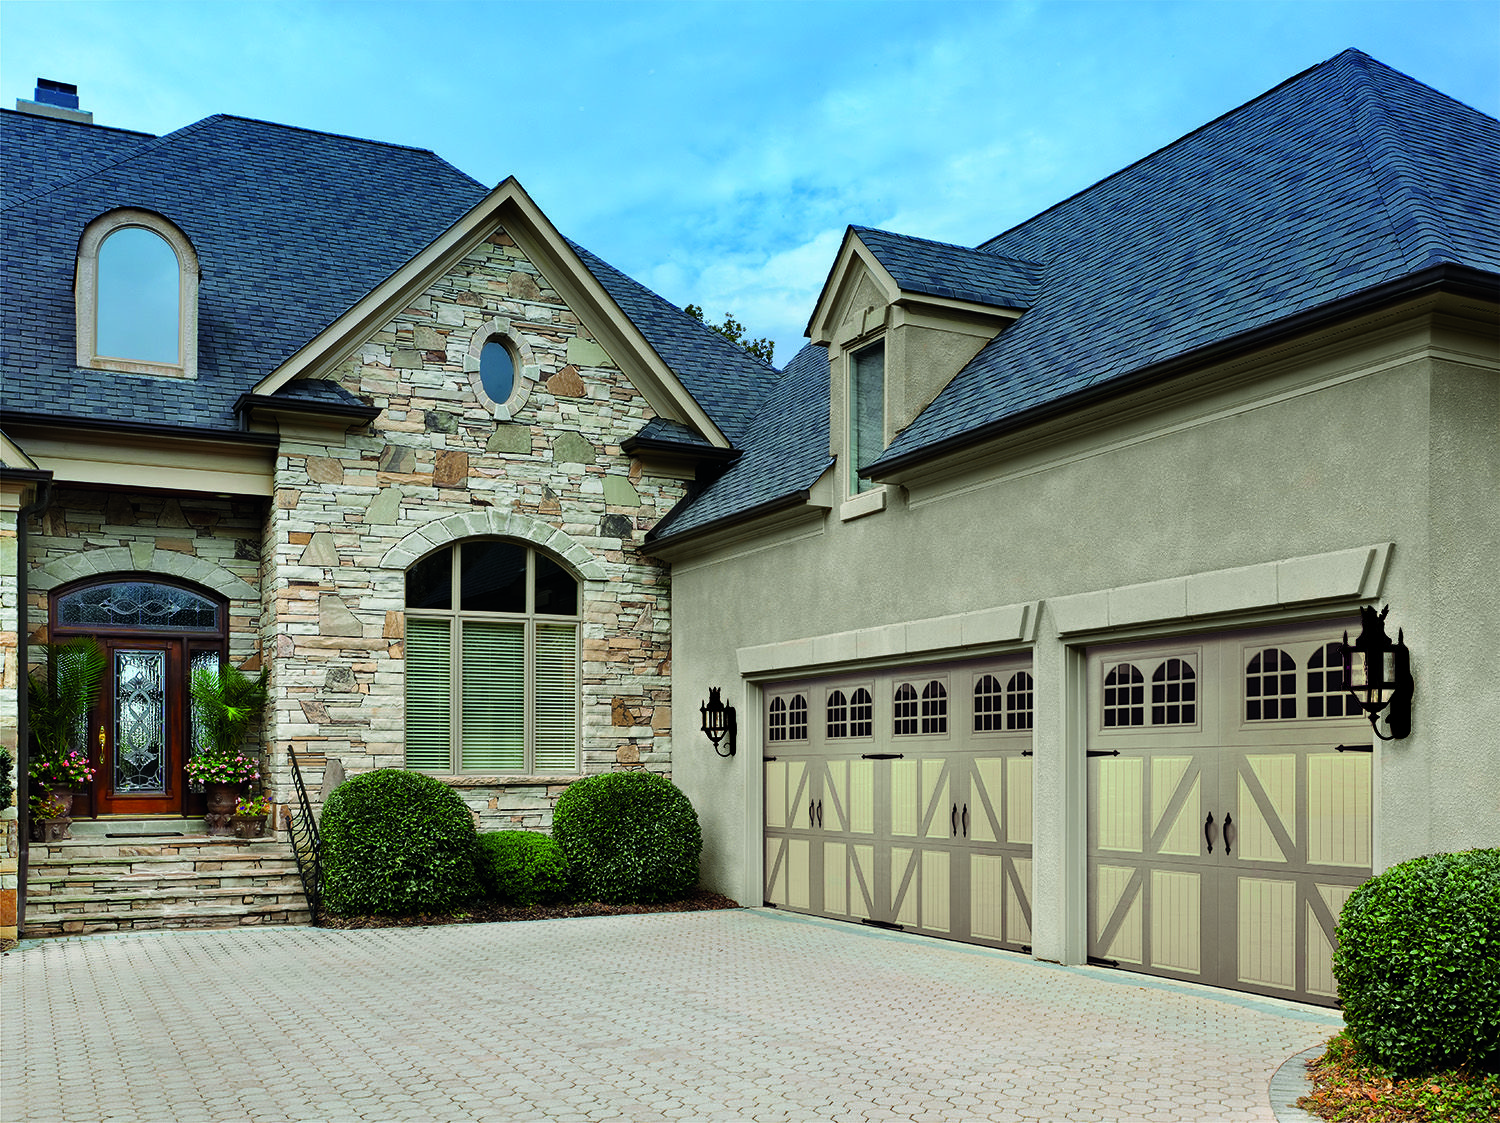 Classica northampton garage door white 9 x 8 no windows - Amarr Garage Doors Classica Collection Lucern Design With Rhine Windows And Blue Ridge Handles And